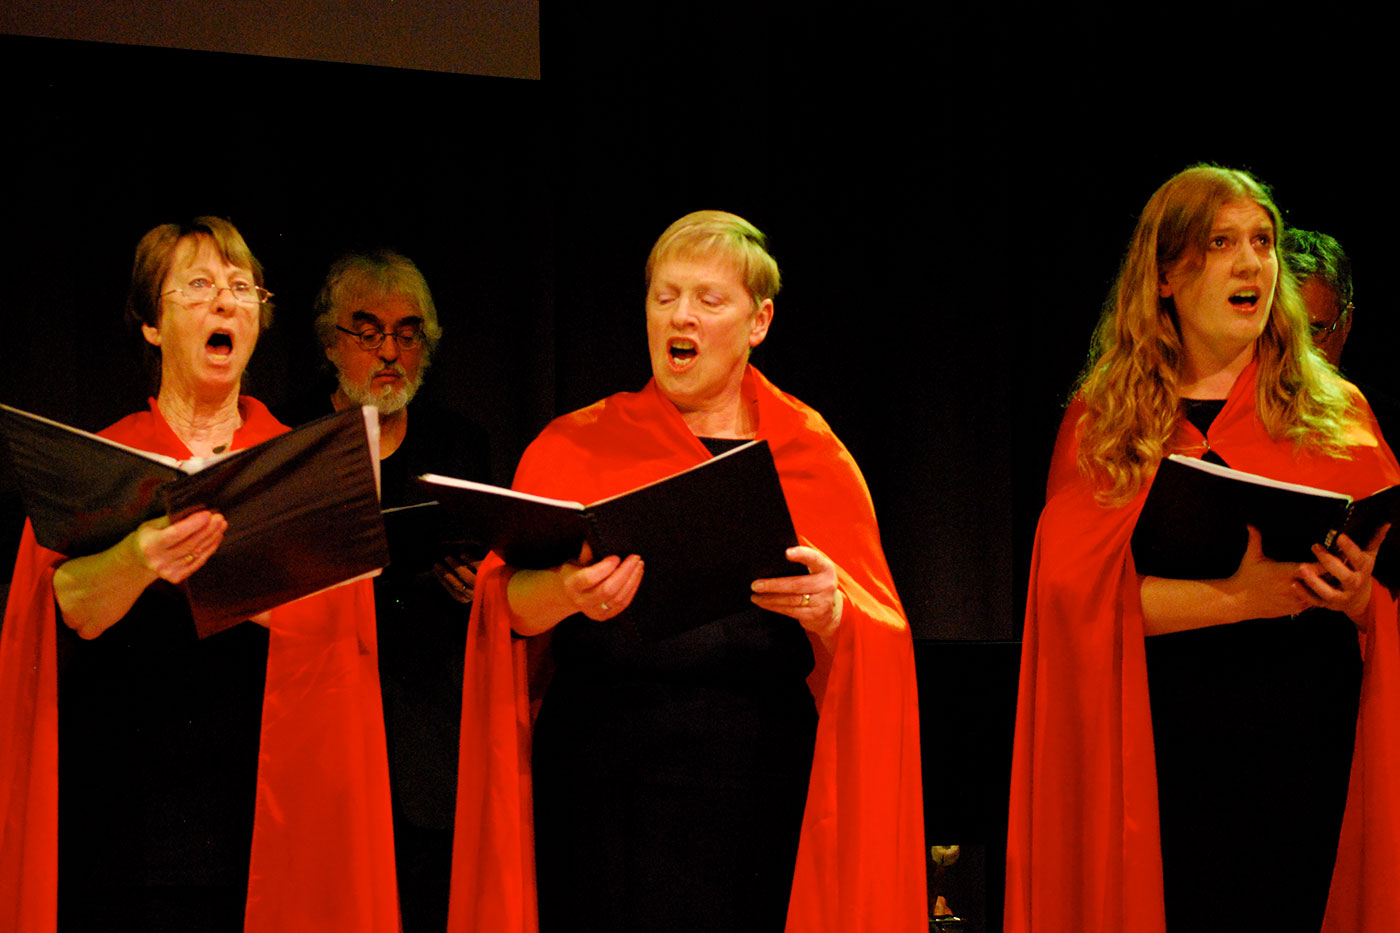 Three women wearing red robes and performing alongside a choir on a stage. - click to view larger image